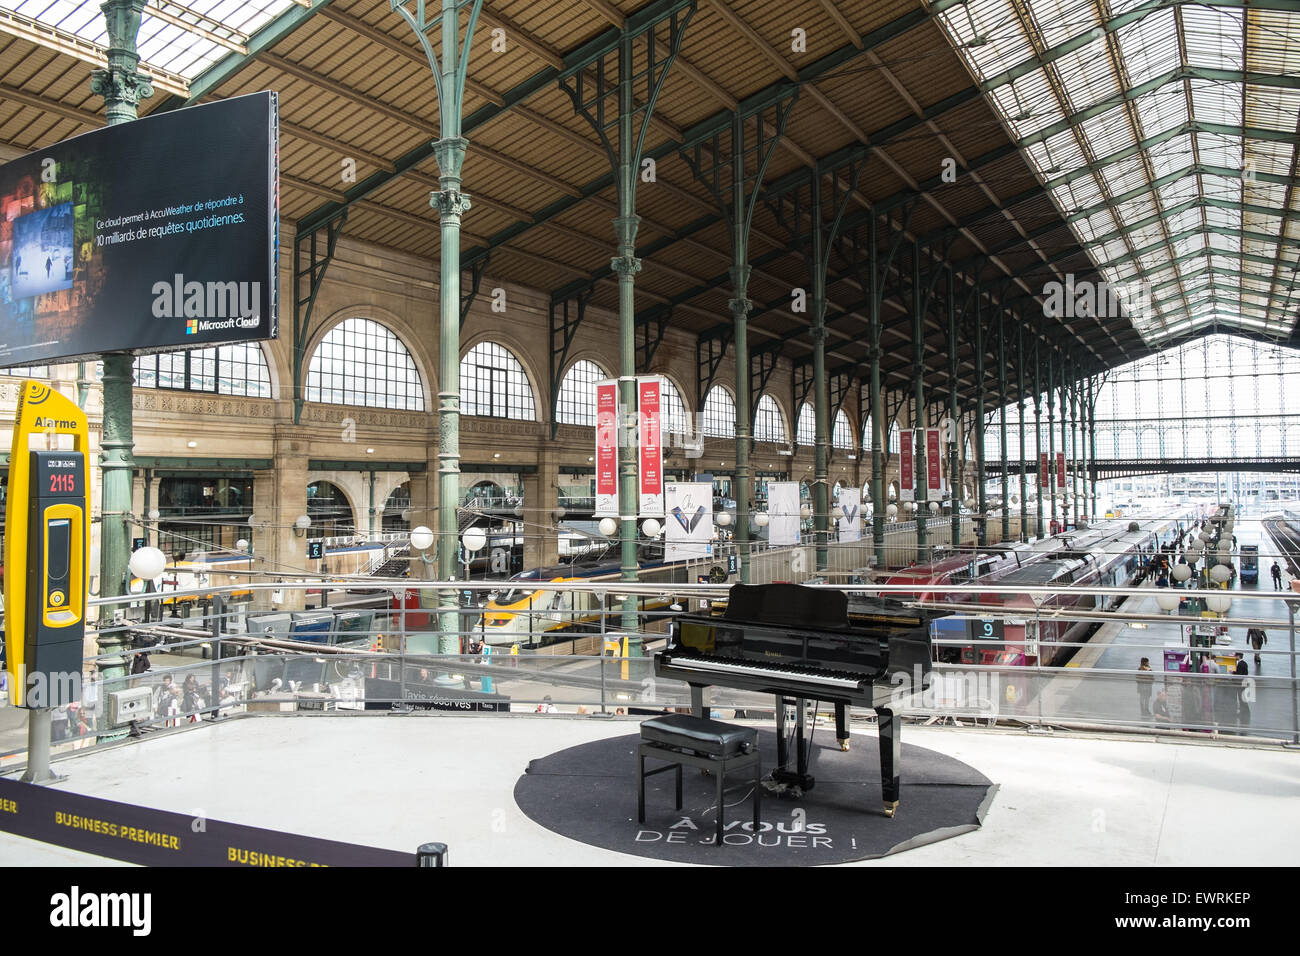 piano at gare du nord eurostar terminal train station paris france stock photo royalty free. Black Bedroom Furniture Sets. Home Design Ideas